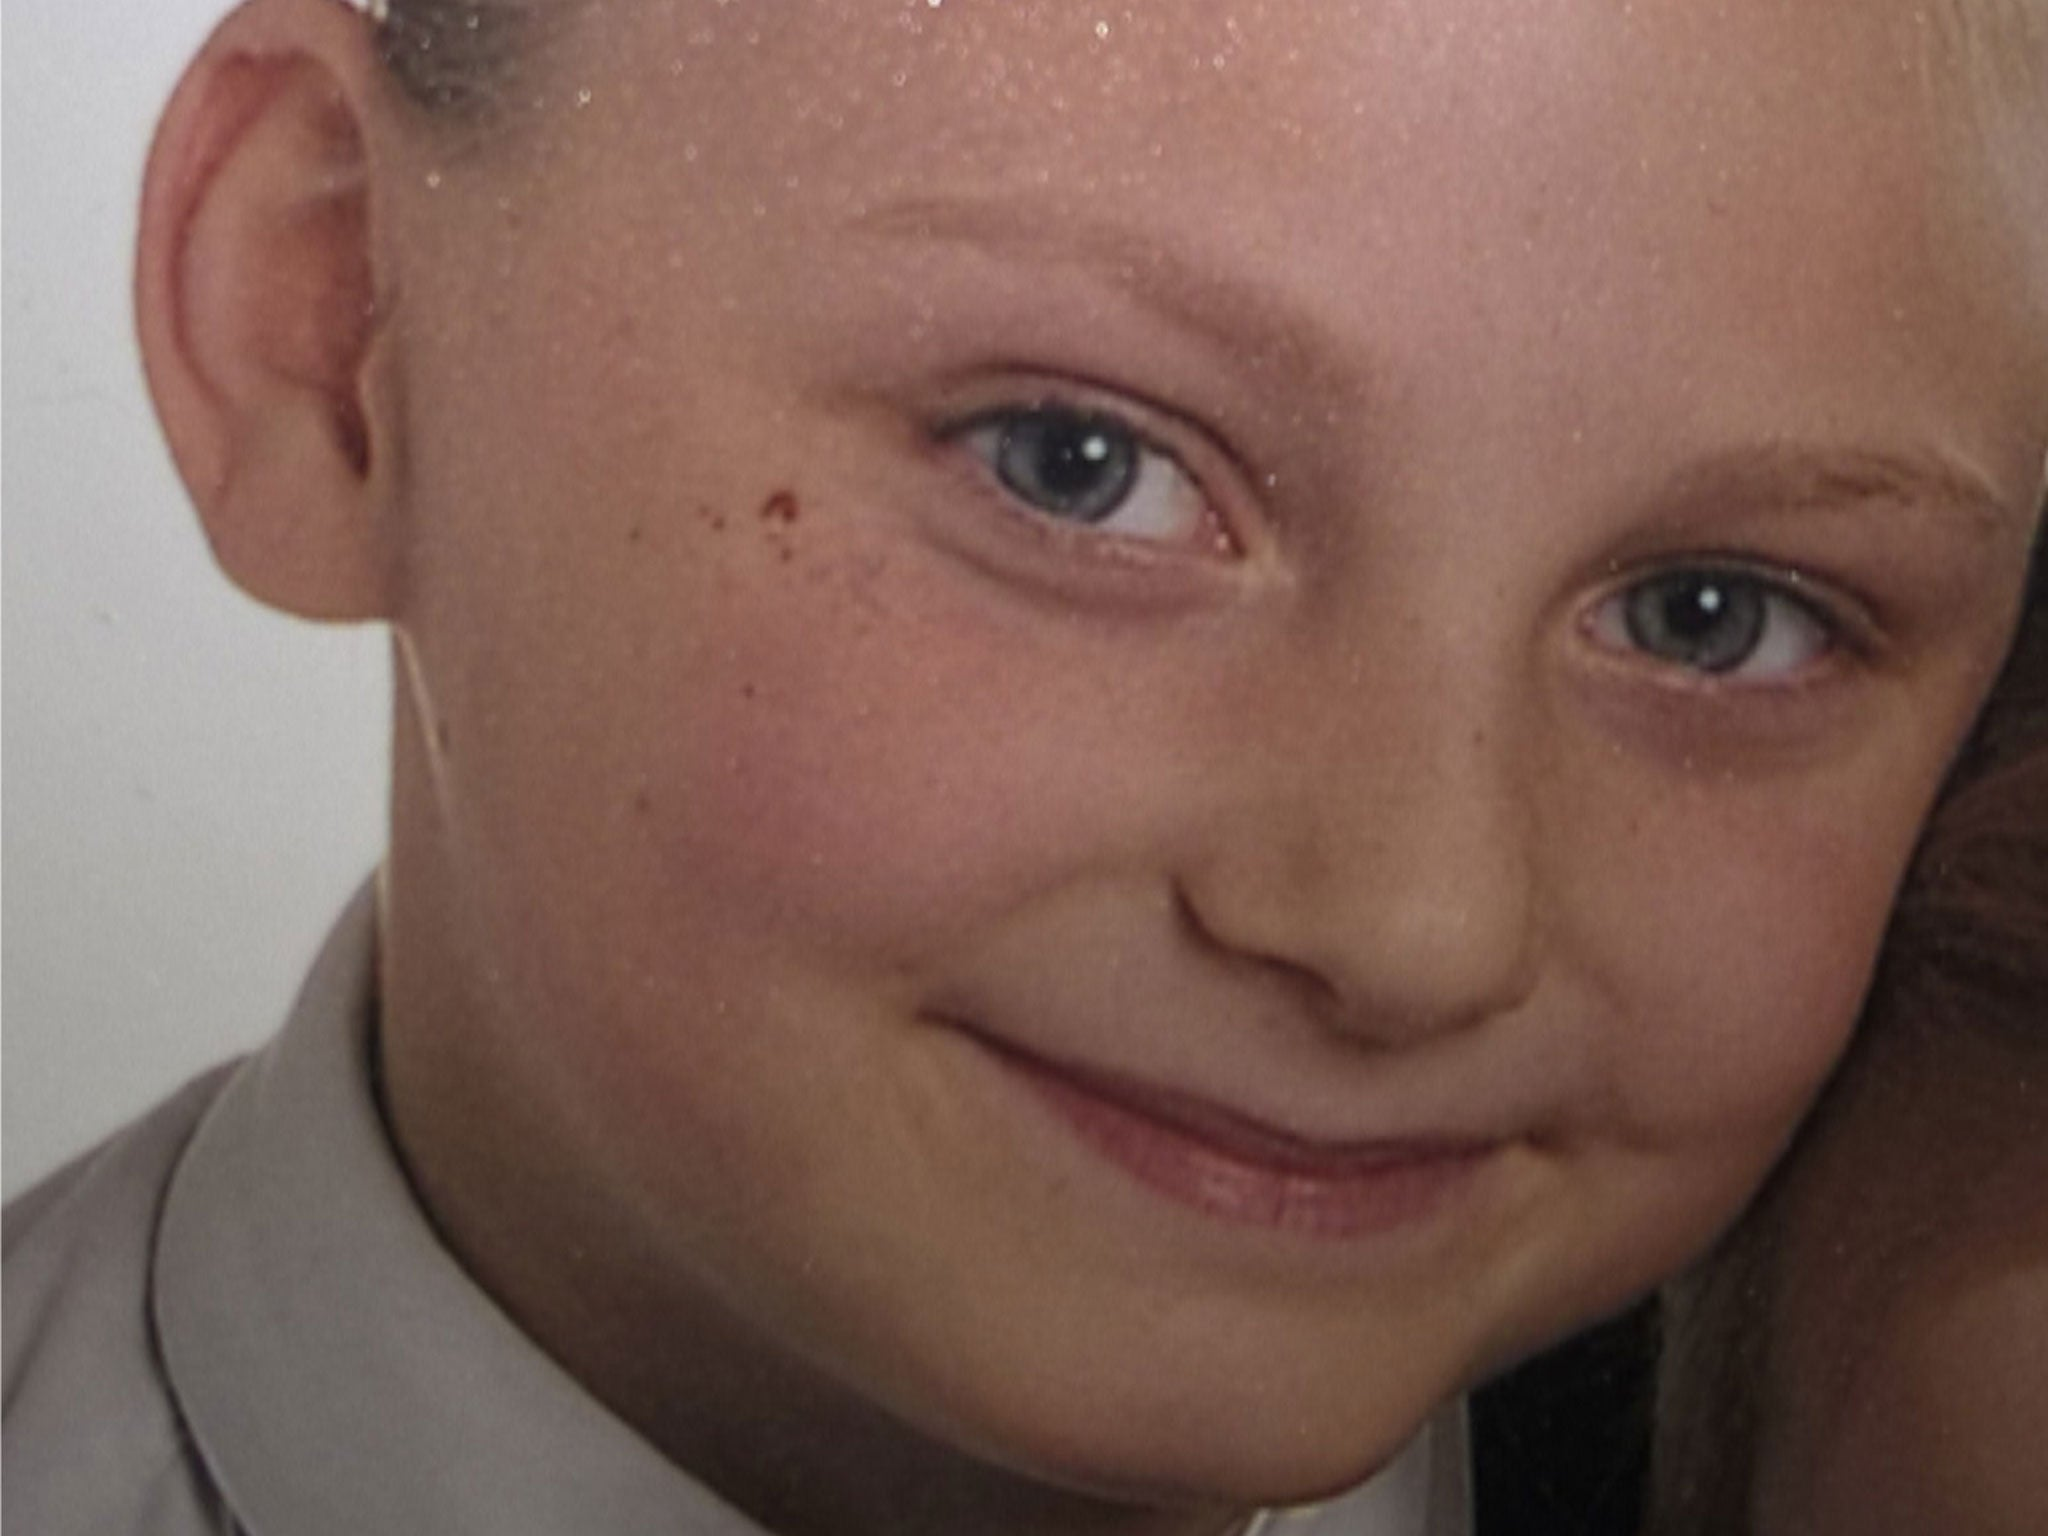 Police launch urgent search for girl, 11, who vanished after leaving school